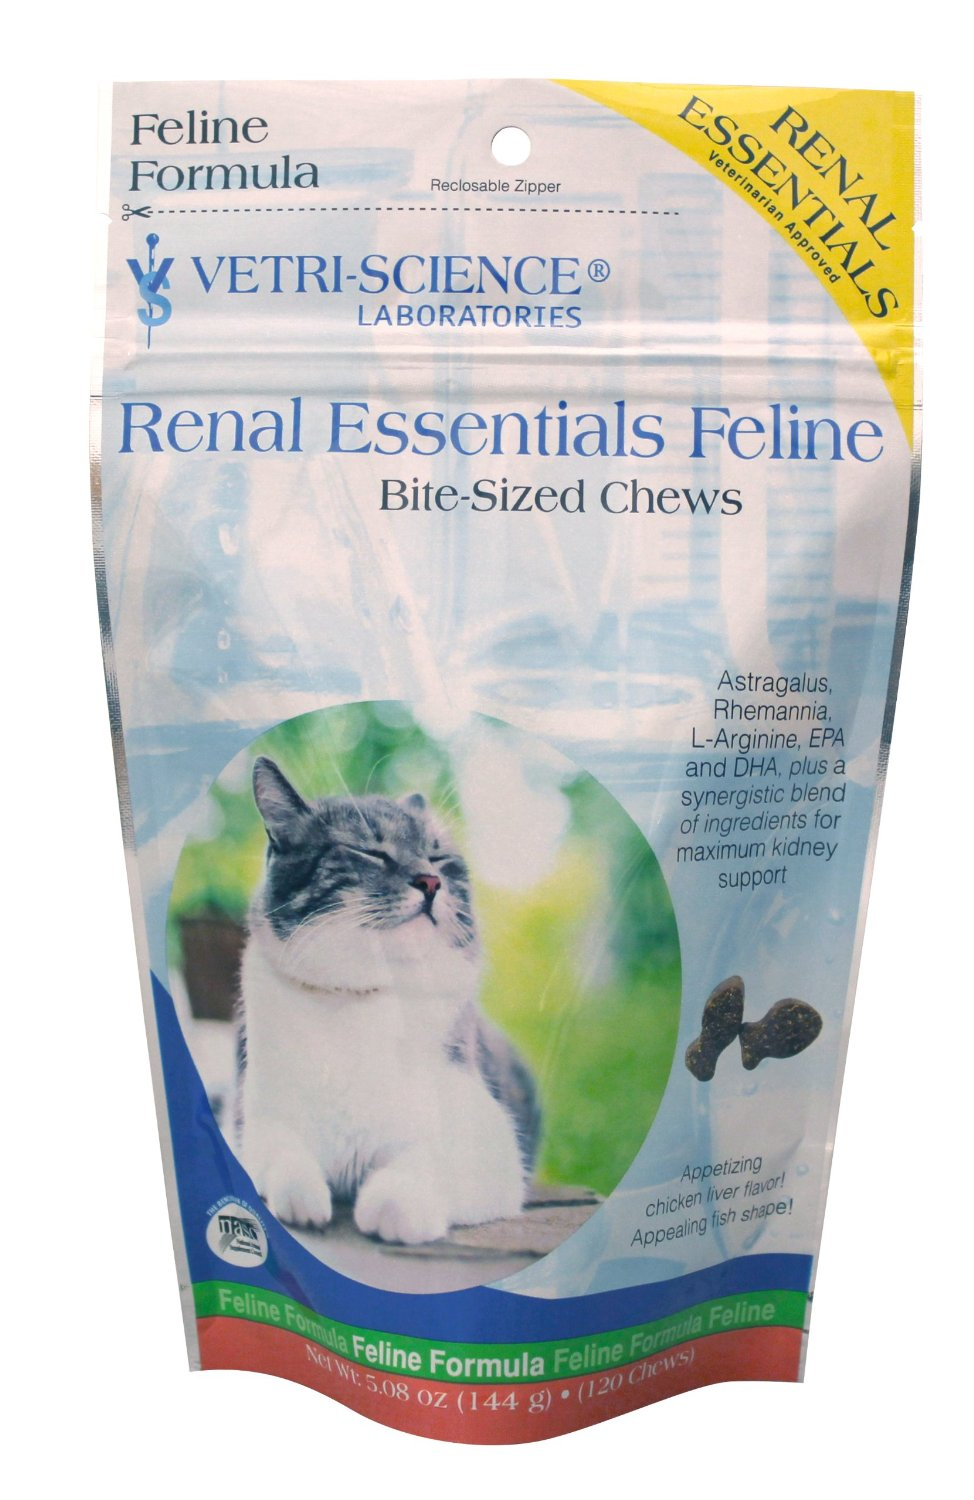 Vetri-Science Laboratories Renal Essentials Feline Supplement